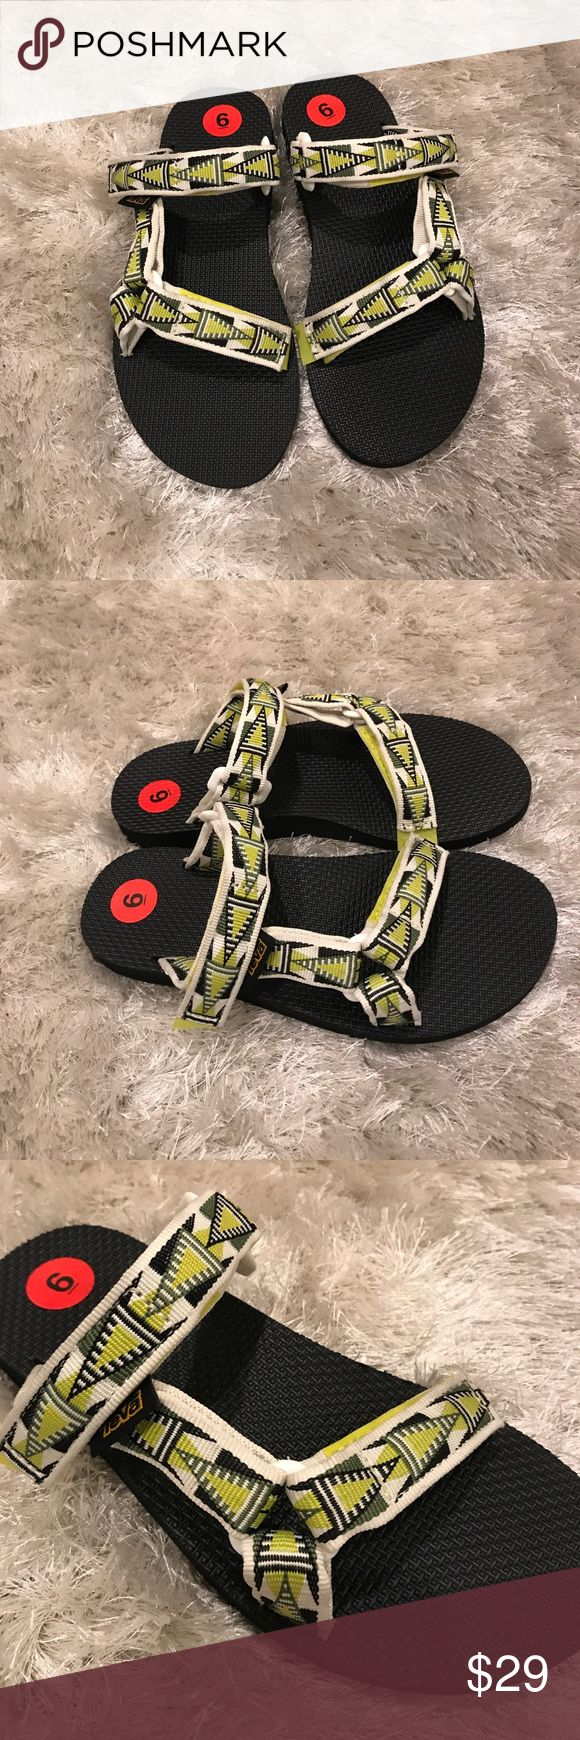 Brand New Women's Teva Sandals Up for sale is a pair of brand new women's Teva sandals. Box not included. Perfect condition and extremely comfortable. Teva Shoes Sandals